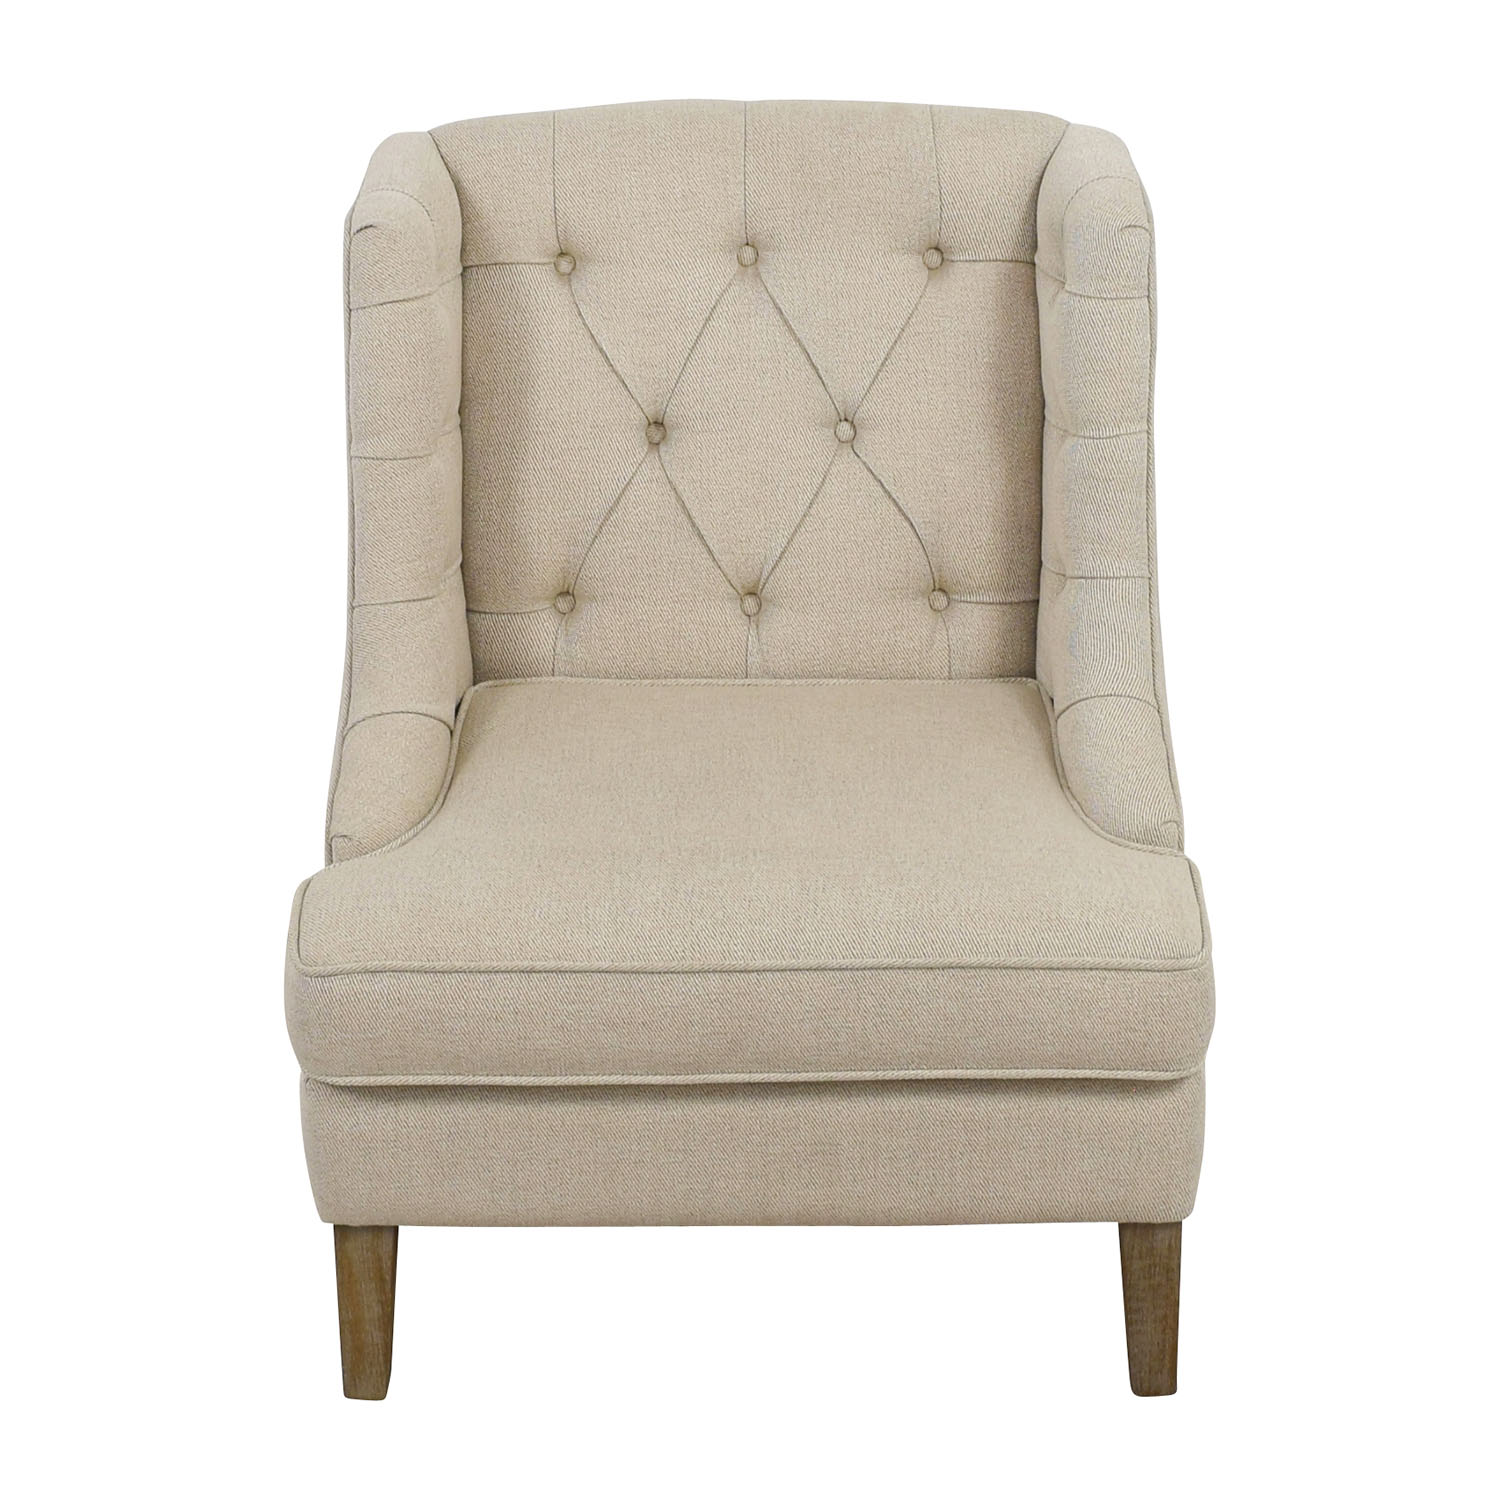 Madison Park Madison Park Tufted Beige Arm Chair Chairs